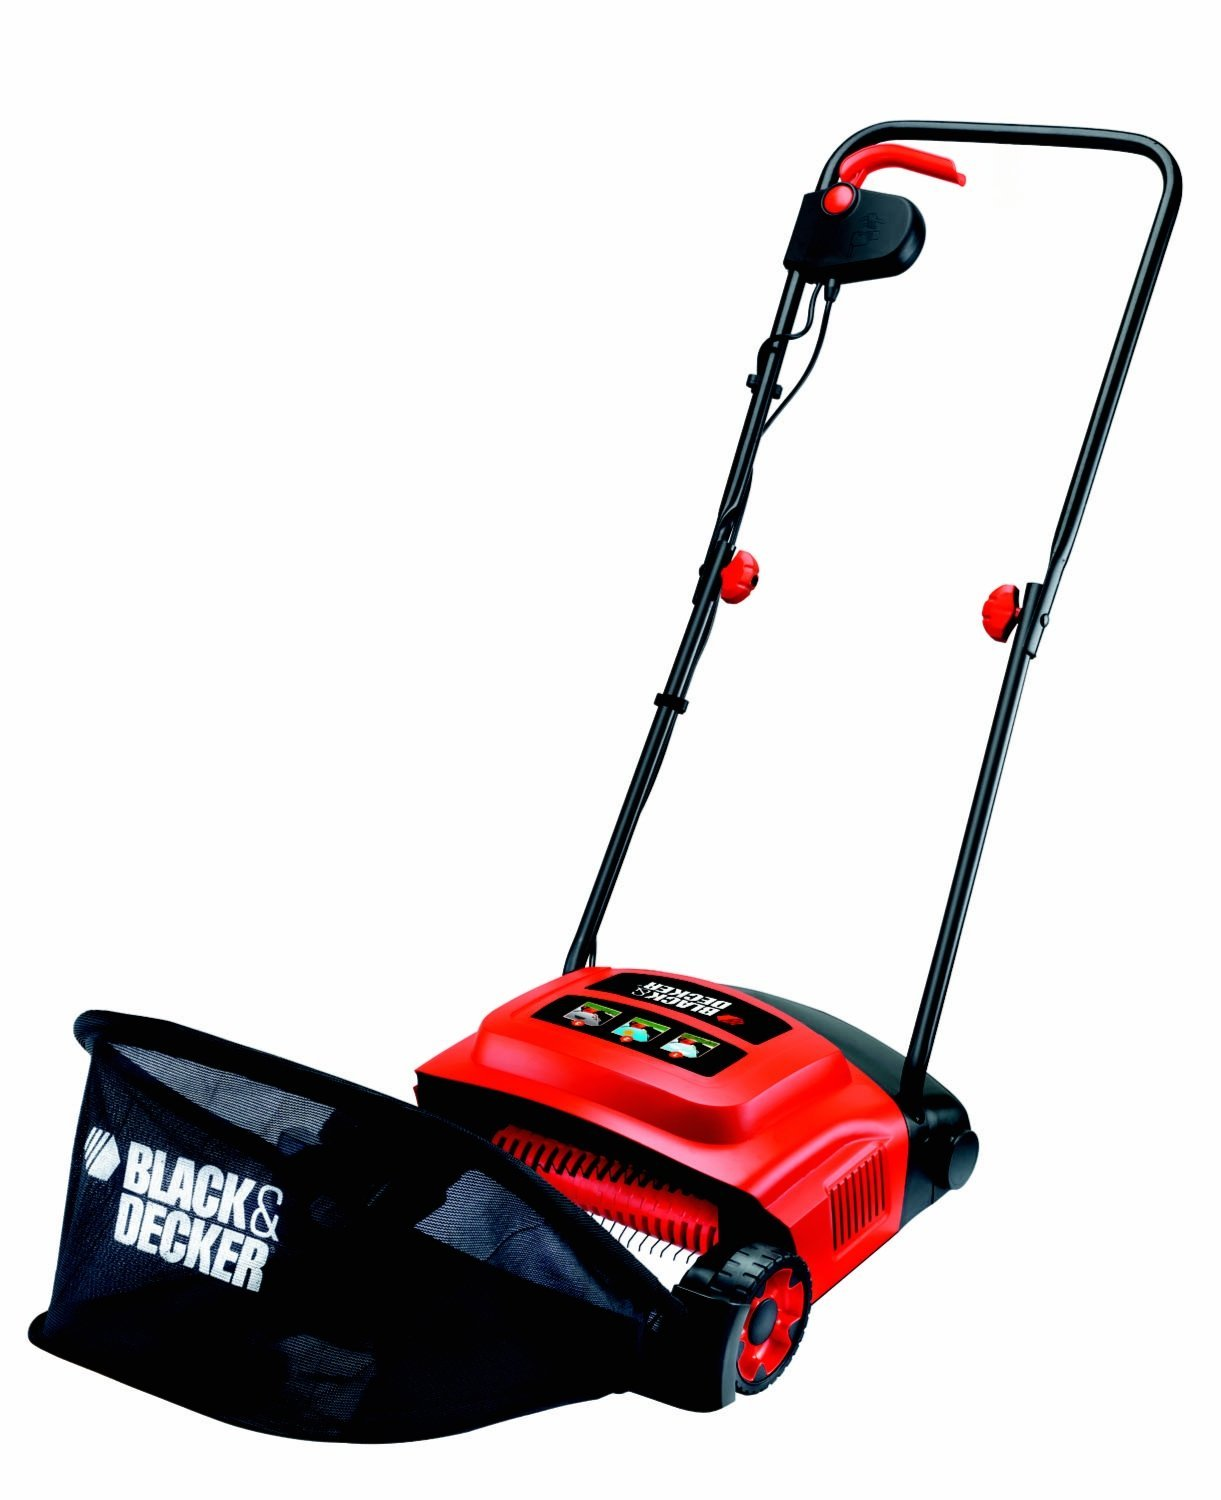 Scarificateur Black + Decker - GD300